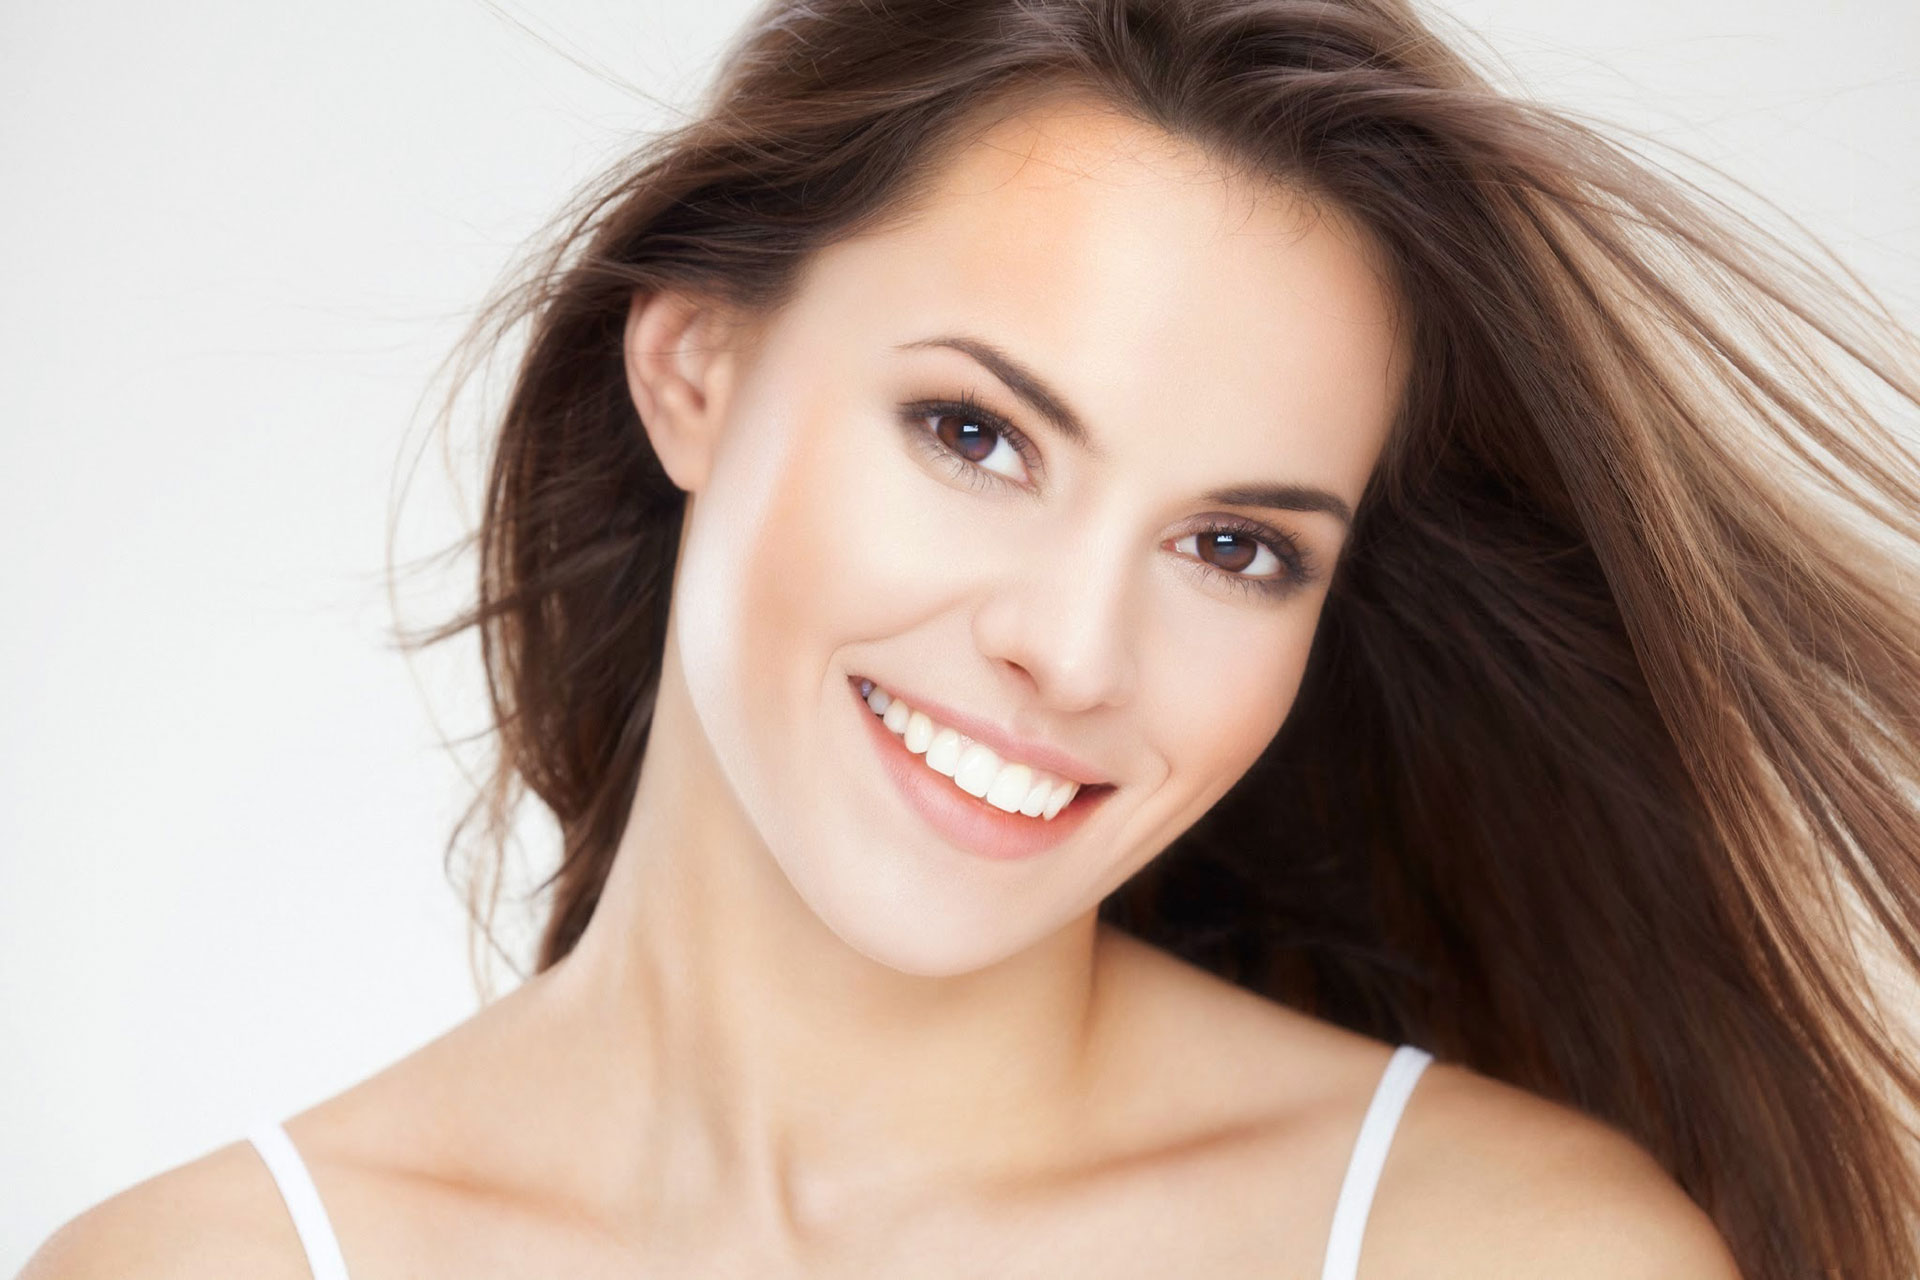 HOW CAN VENEERS IMPROVE MY SMILE?